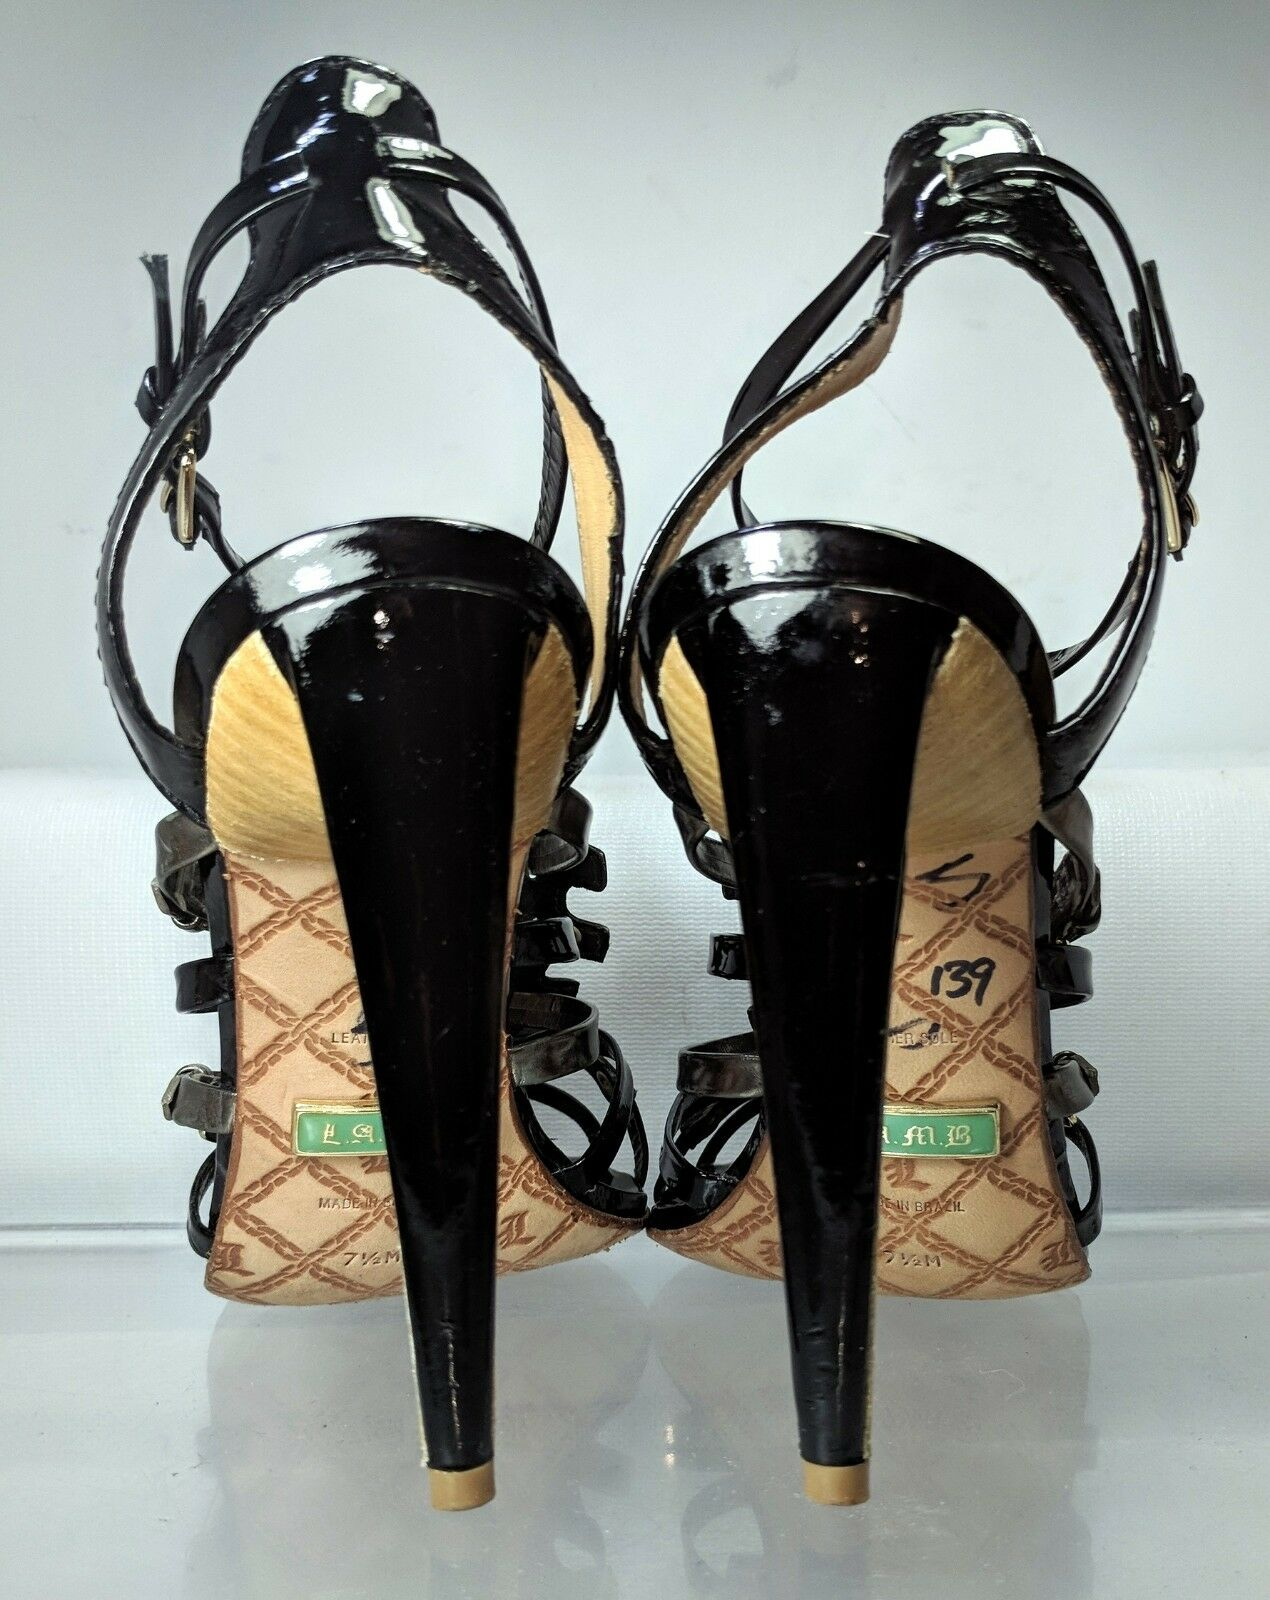 LAMB High Heel Cage Damens Multi Buckle Strap Sandale Damens Cage US 7.5 Brazil Good Shape cb6693